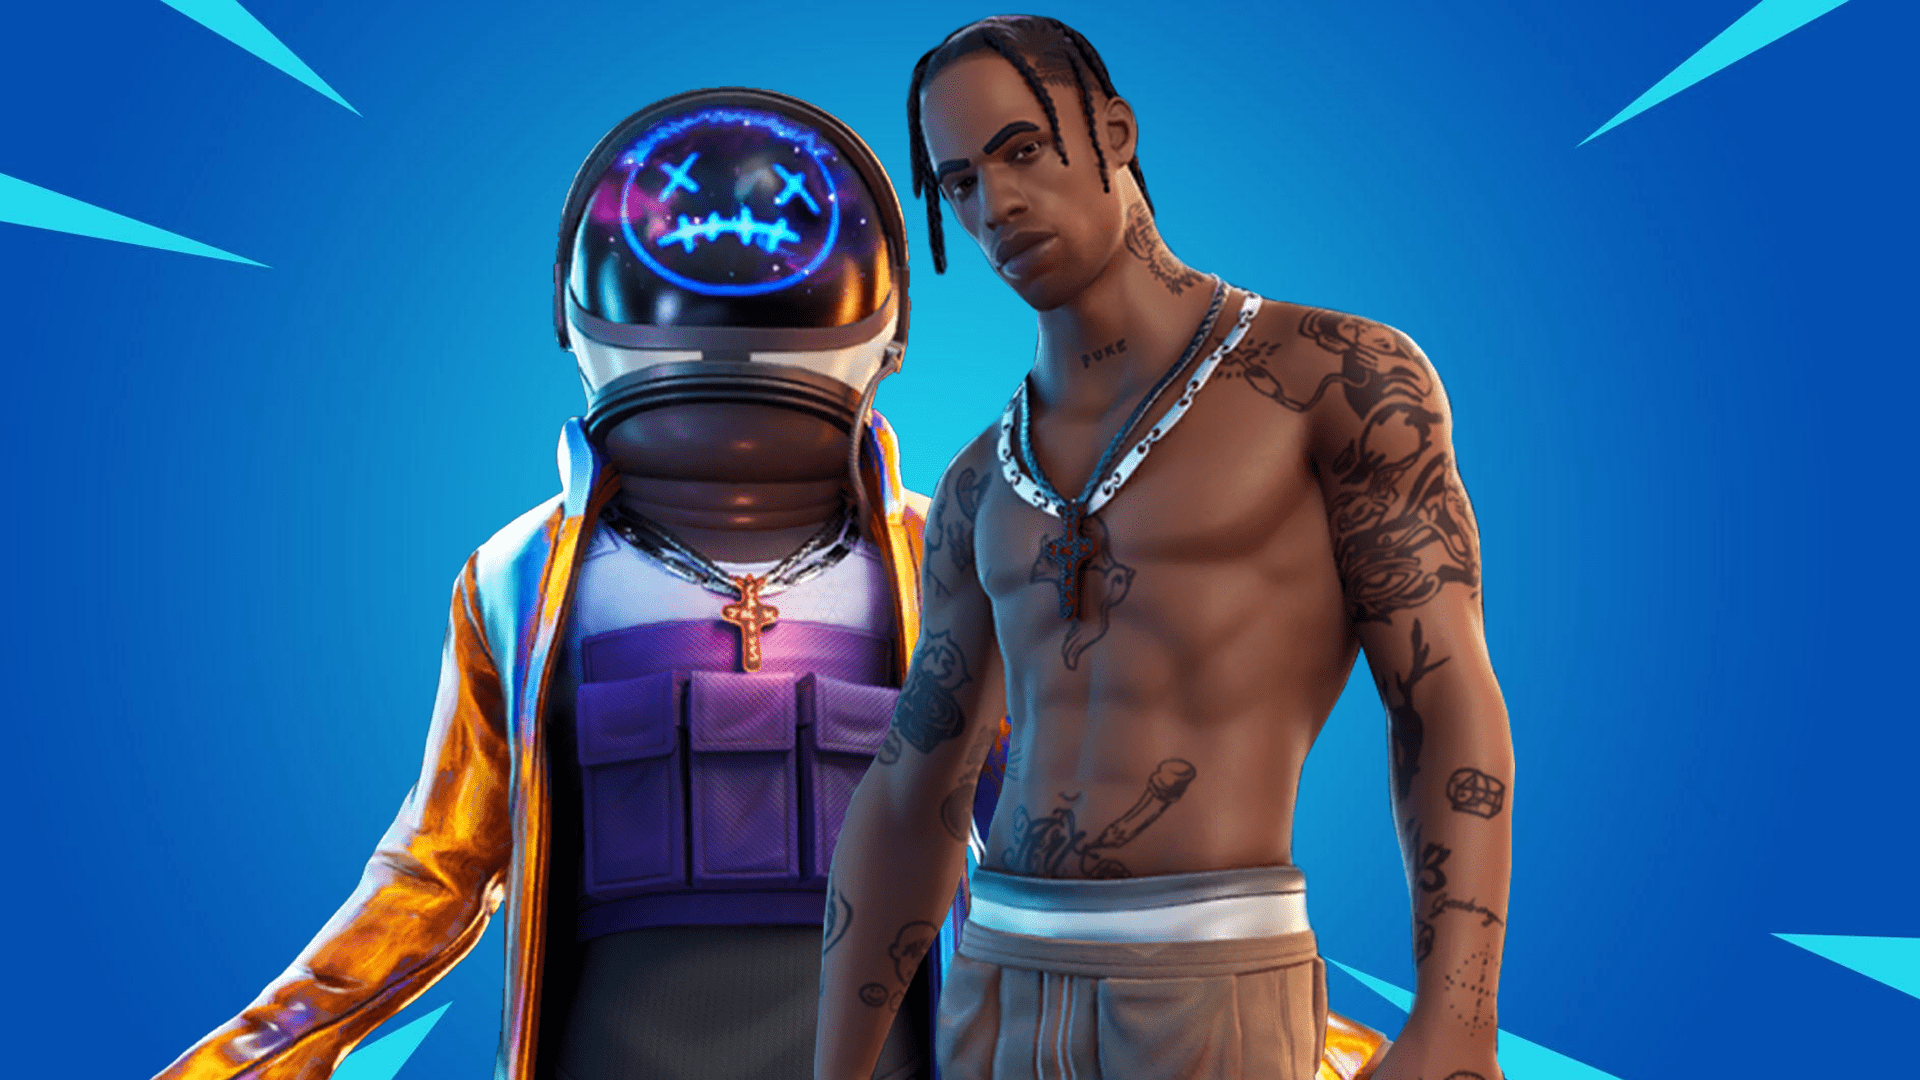 Fortnite Travis Scott Wallpaper For Mobile Phone Tablet Desktop Computer And Other Devices Wallpapers For Mobile Phones Travis Scott Travis Scott Wallpapers